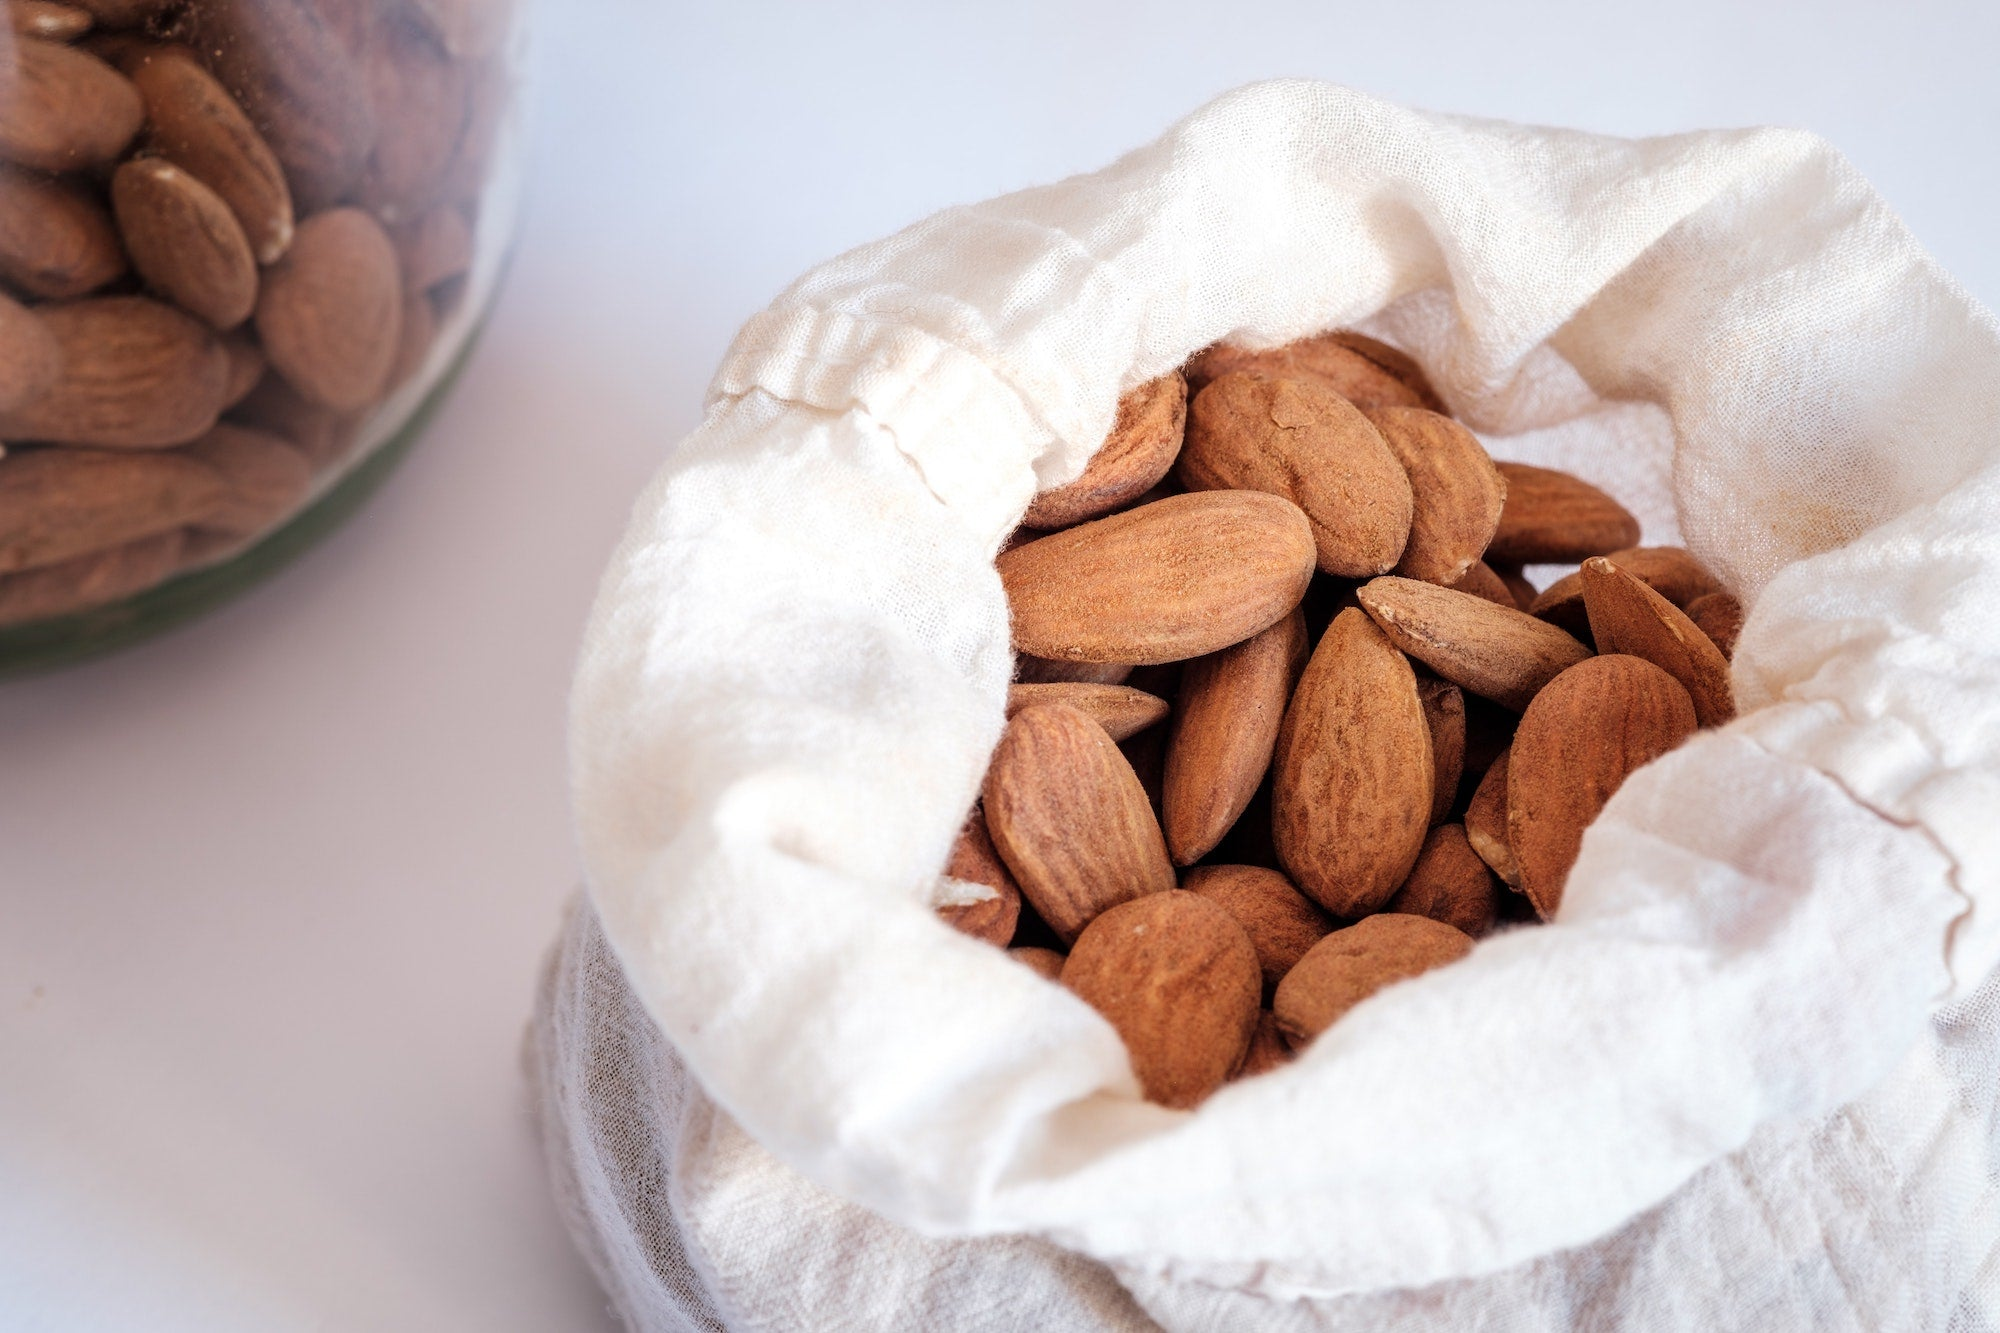 A cloth bag filled with almonds rests on a table.